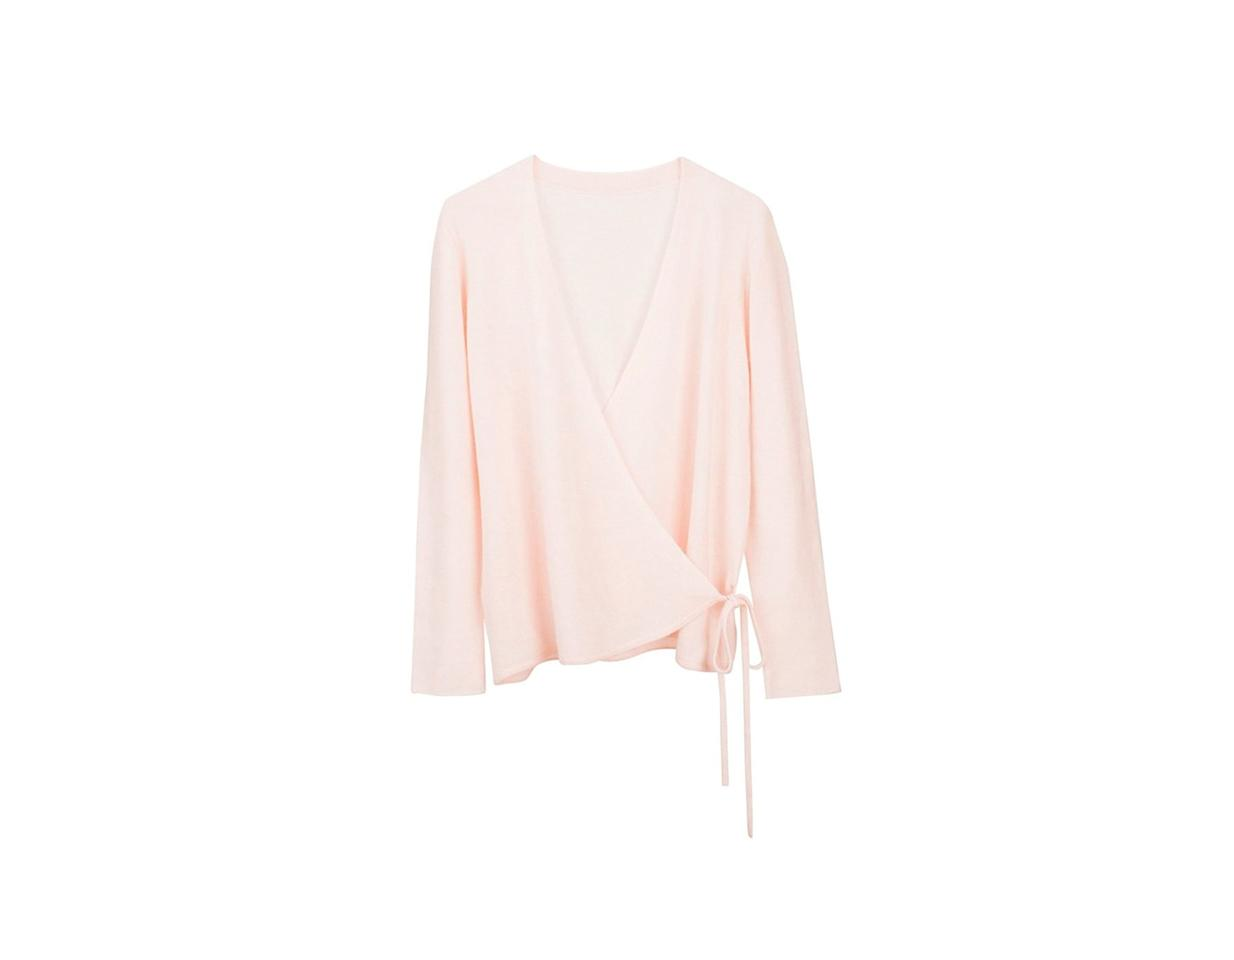 """<p>Like the best blanket—but more appropriate for leaving the house—this super soft wrap cardigan will keep you warm and snug all season long.</p> <p><strong>To buy: </strong>$180; <a href=""""https://shareasale.com/r.cfm?b=793159&u=1772040&m=62354&urllink=https%3A//www.cuyana.com/merino-cashmere-wrap-cardigan.html&afftrack=RS%252C7SeriouslyCozyOversizedSweaters%252Cnorlingh%252CSWE%252CDAI%252C556999%252C201809%252CI"""" target=""""_blank"""">cuyana.com</a>.</p>"""